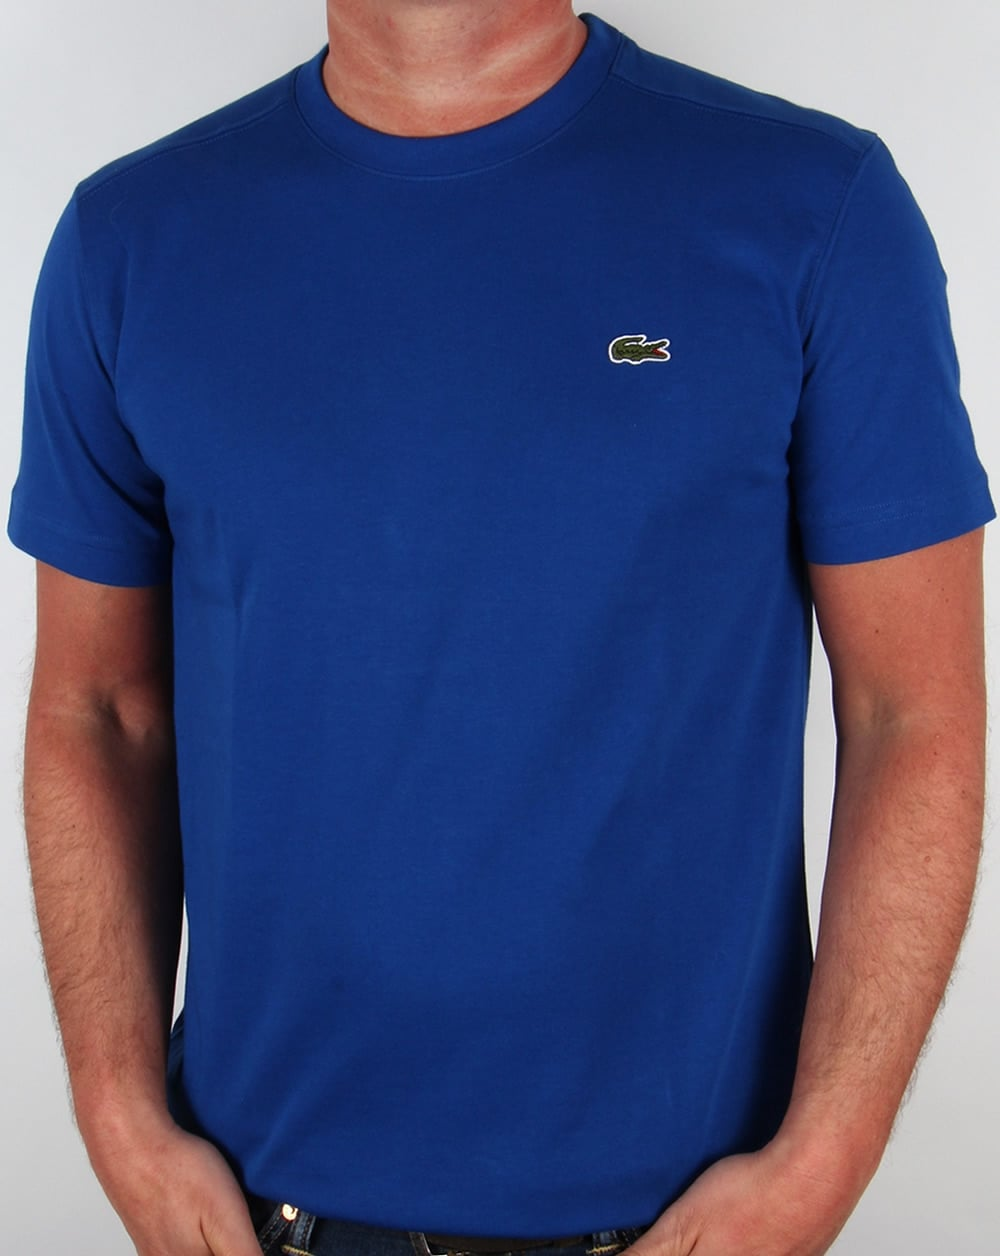 lacoste t shirt royal blue tee crew neck sport mens. Black Bedroom Furniture Sets. Home Design Ideas